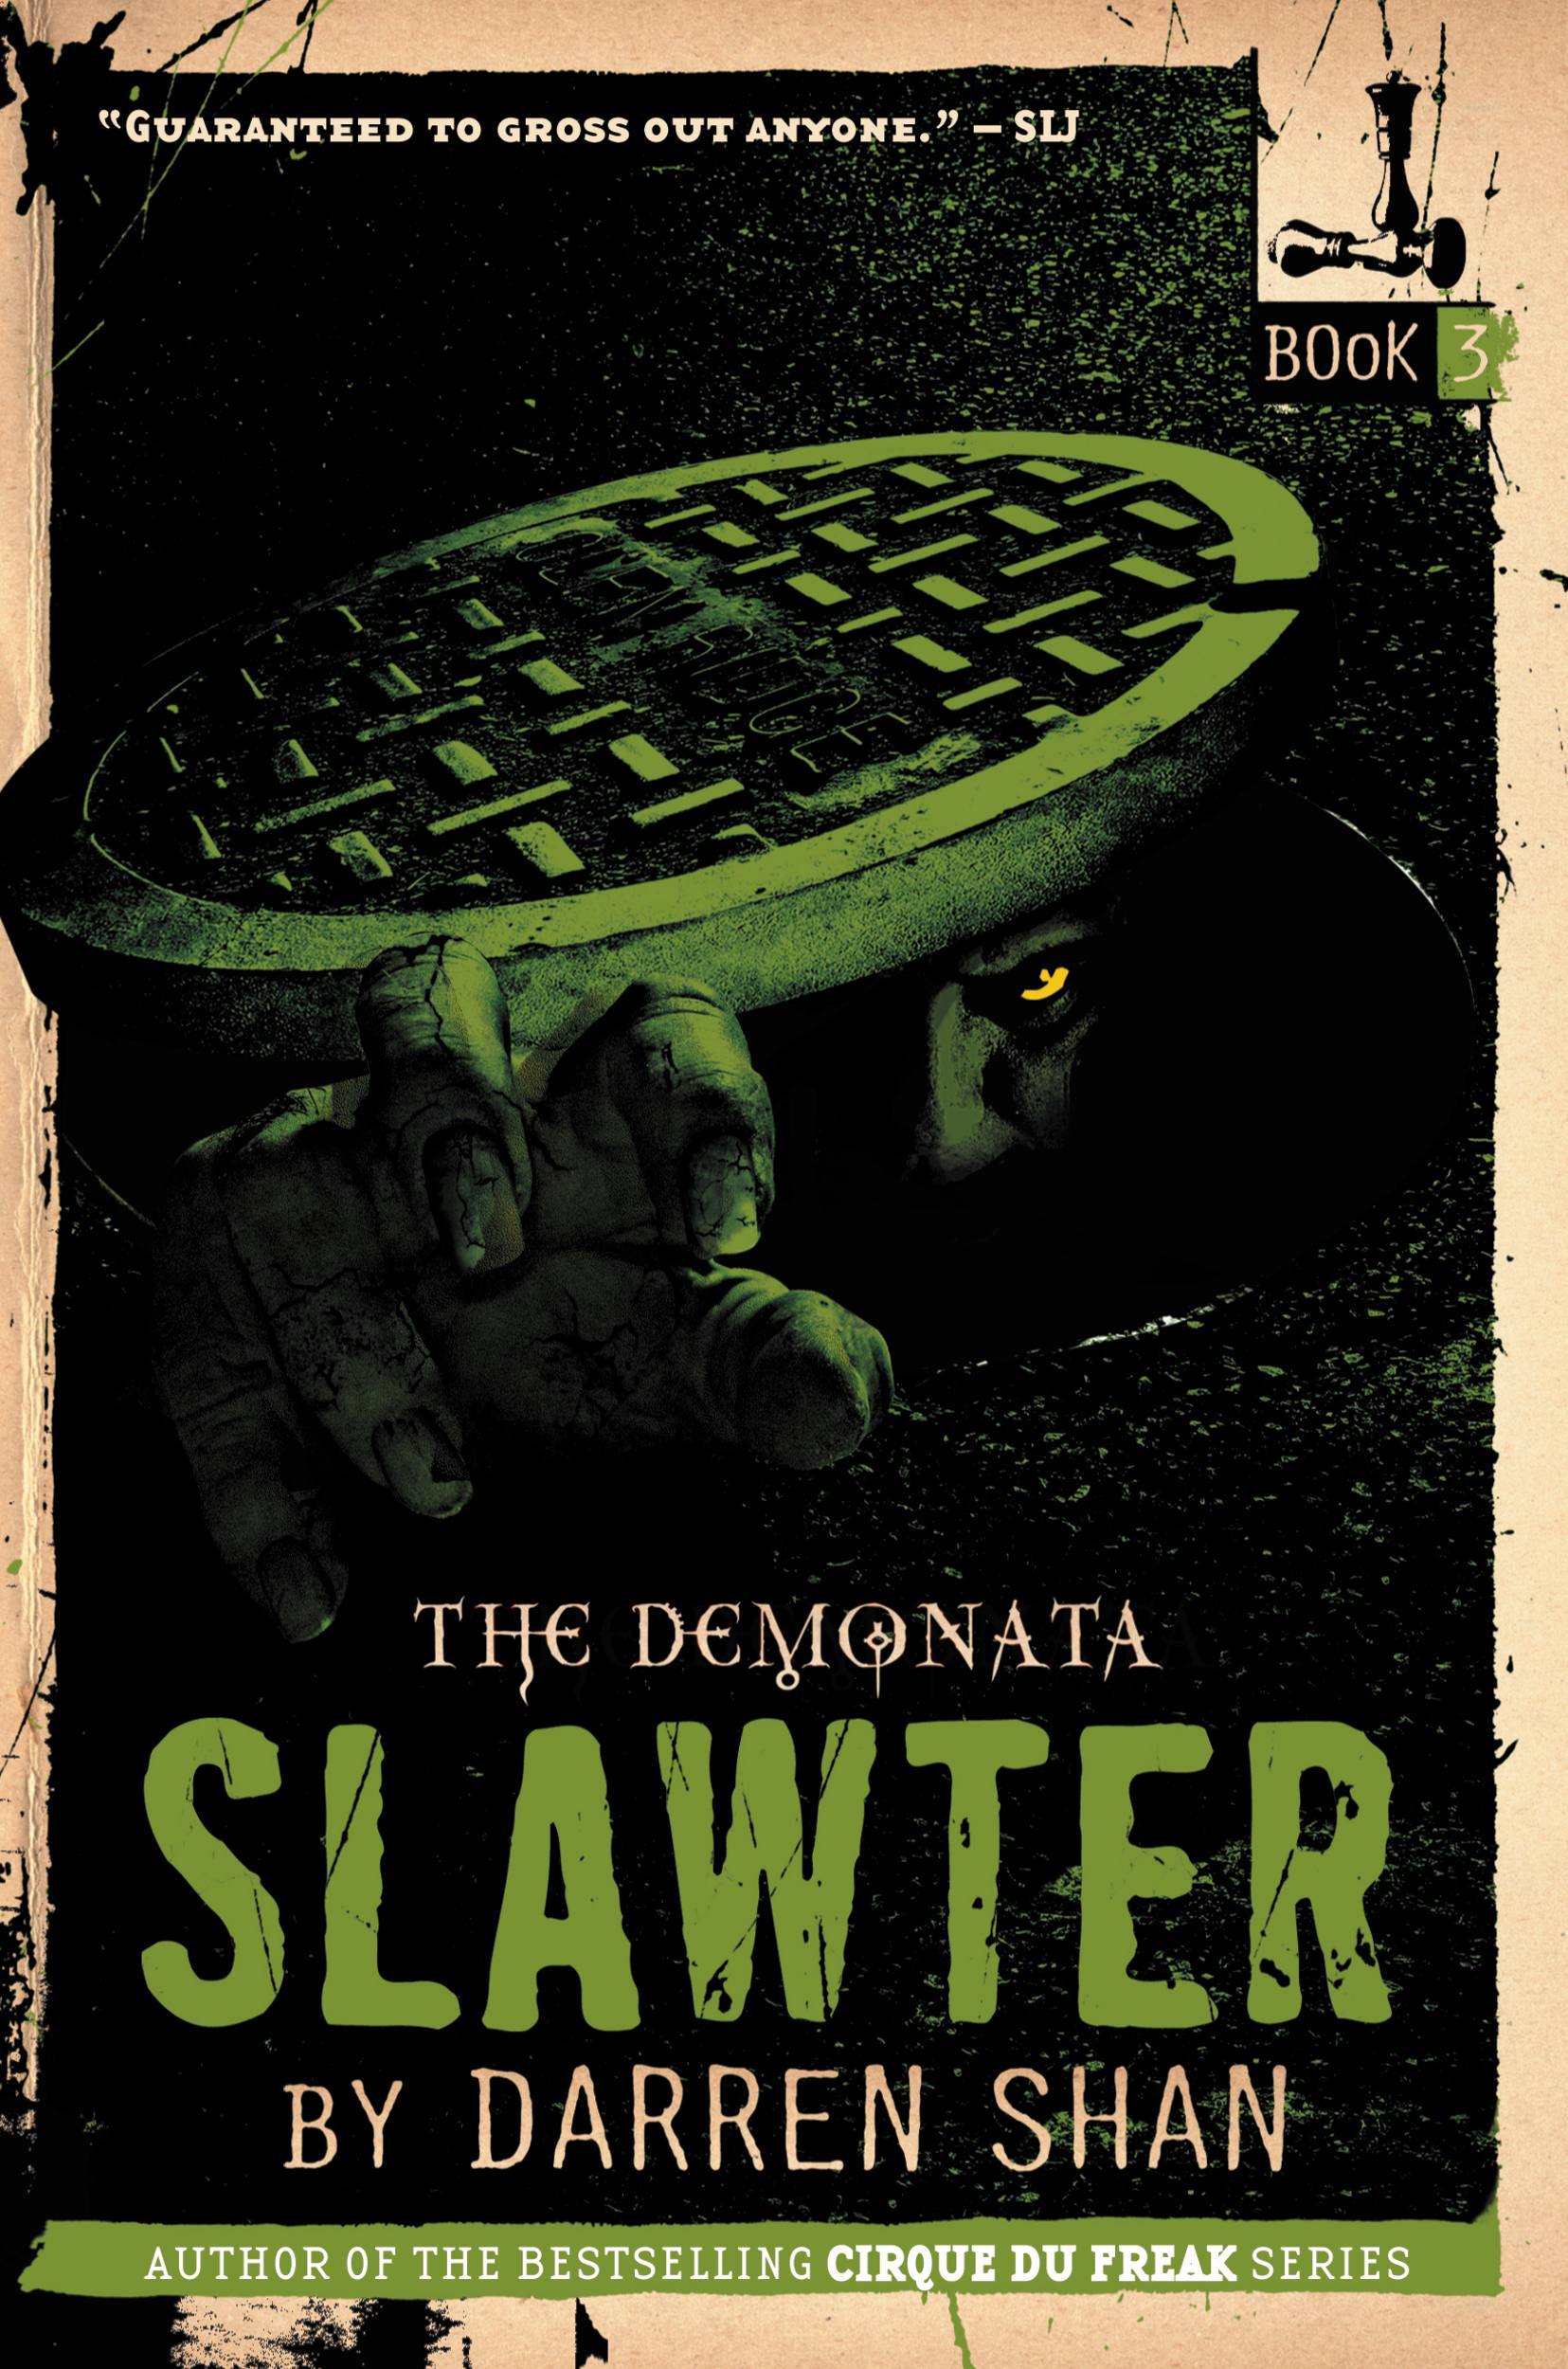 The Demonata #3: Slawter By: Darren Shan